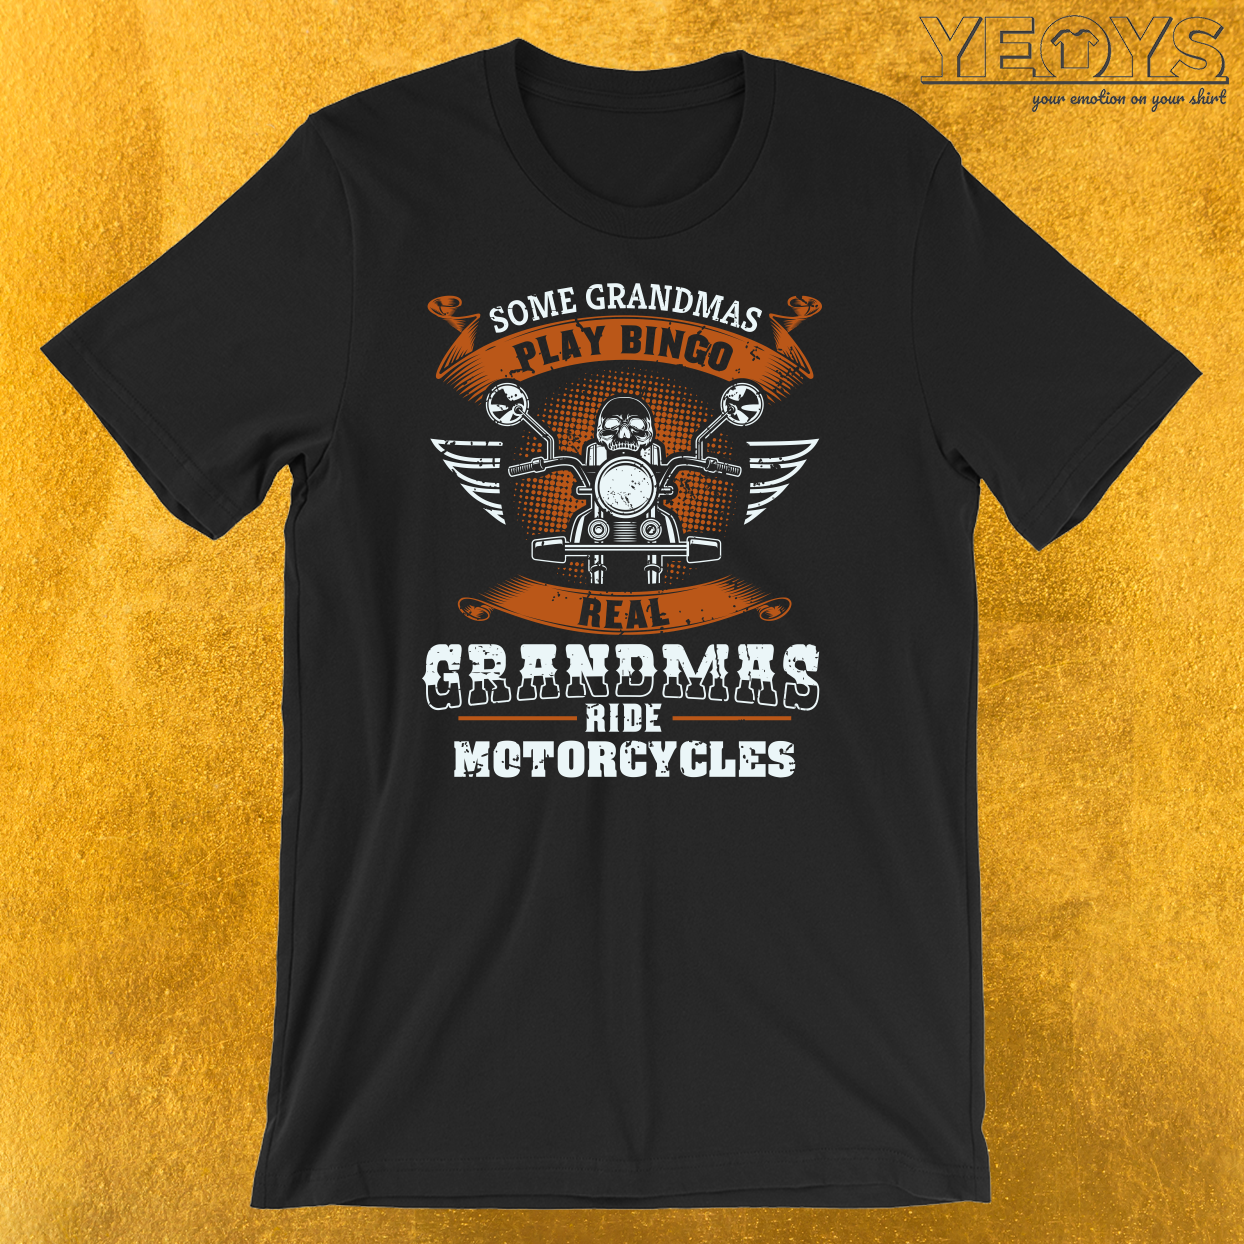 Some Grandmas Play Bingo Real Ride Motorcycles T-Shirt